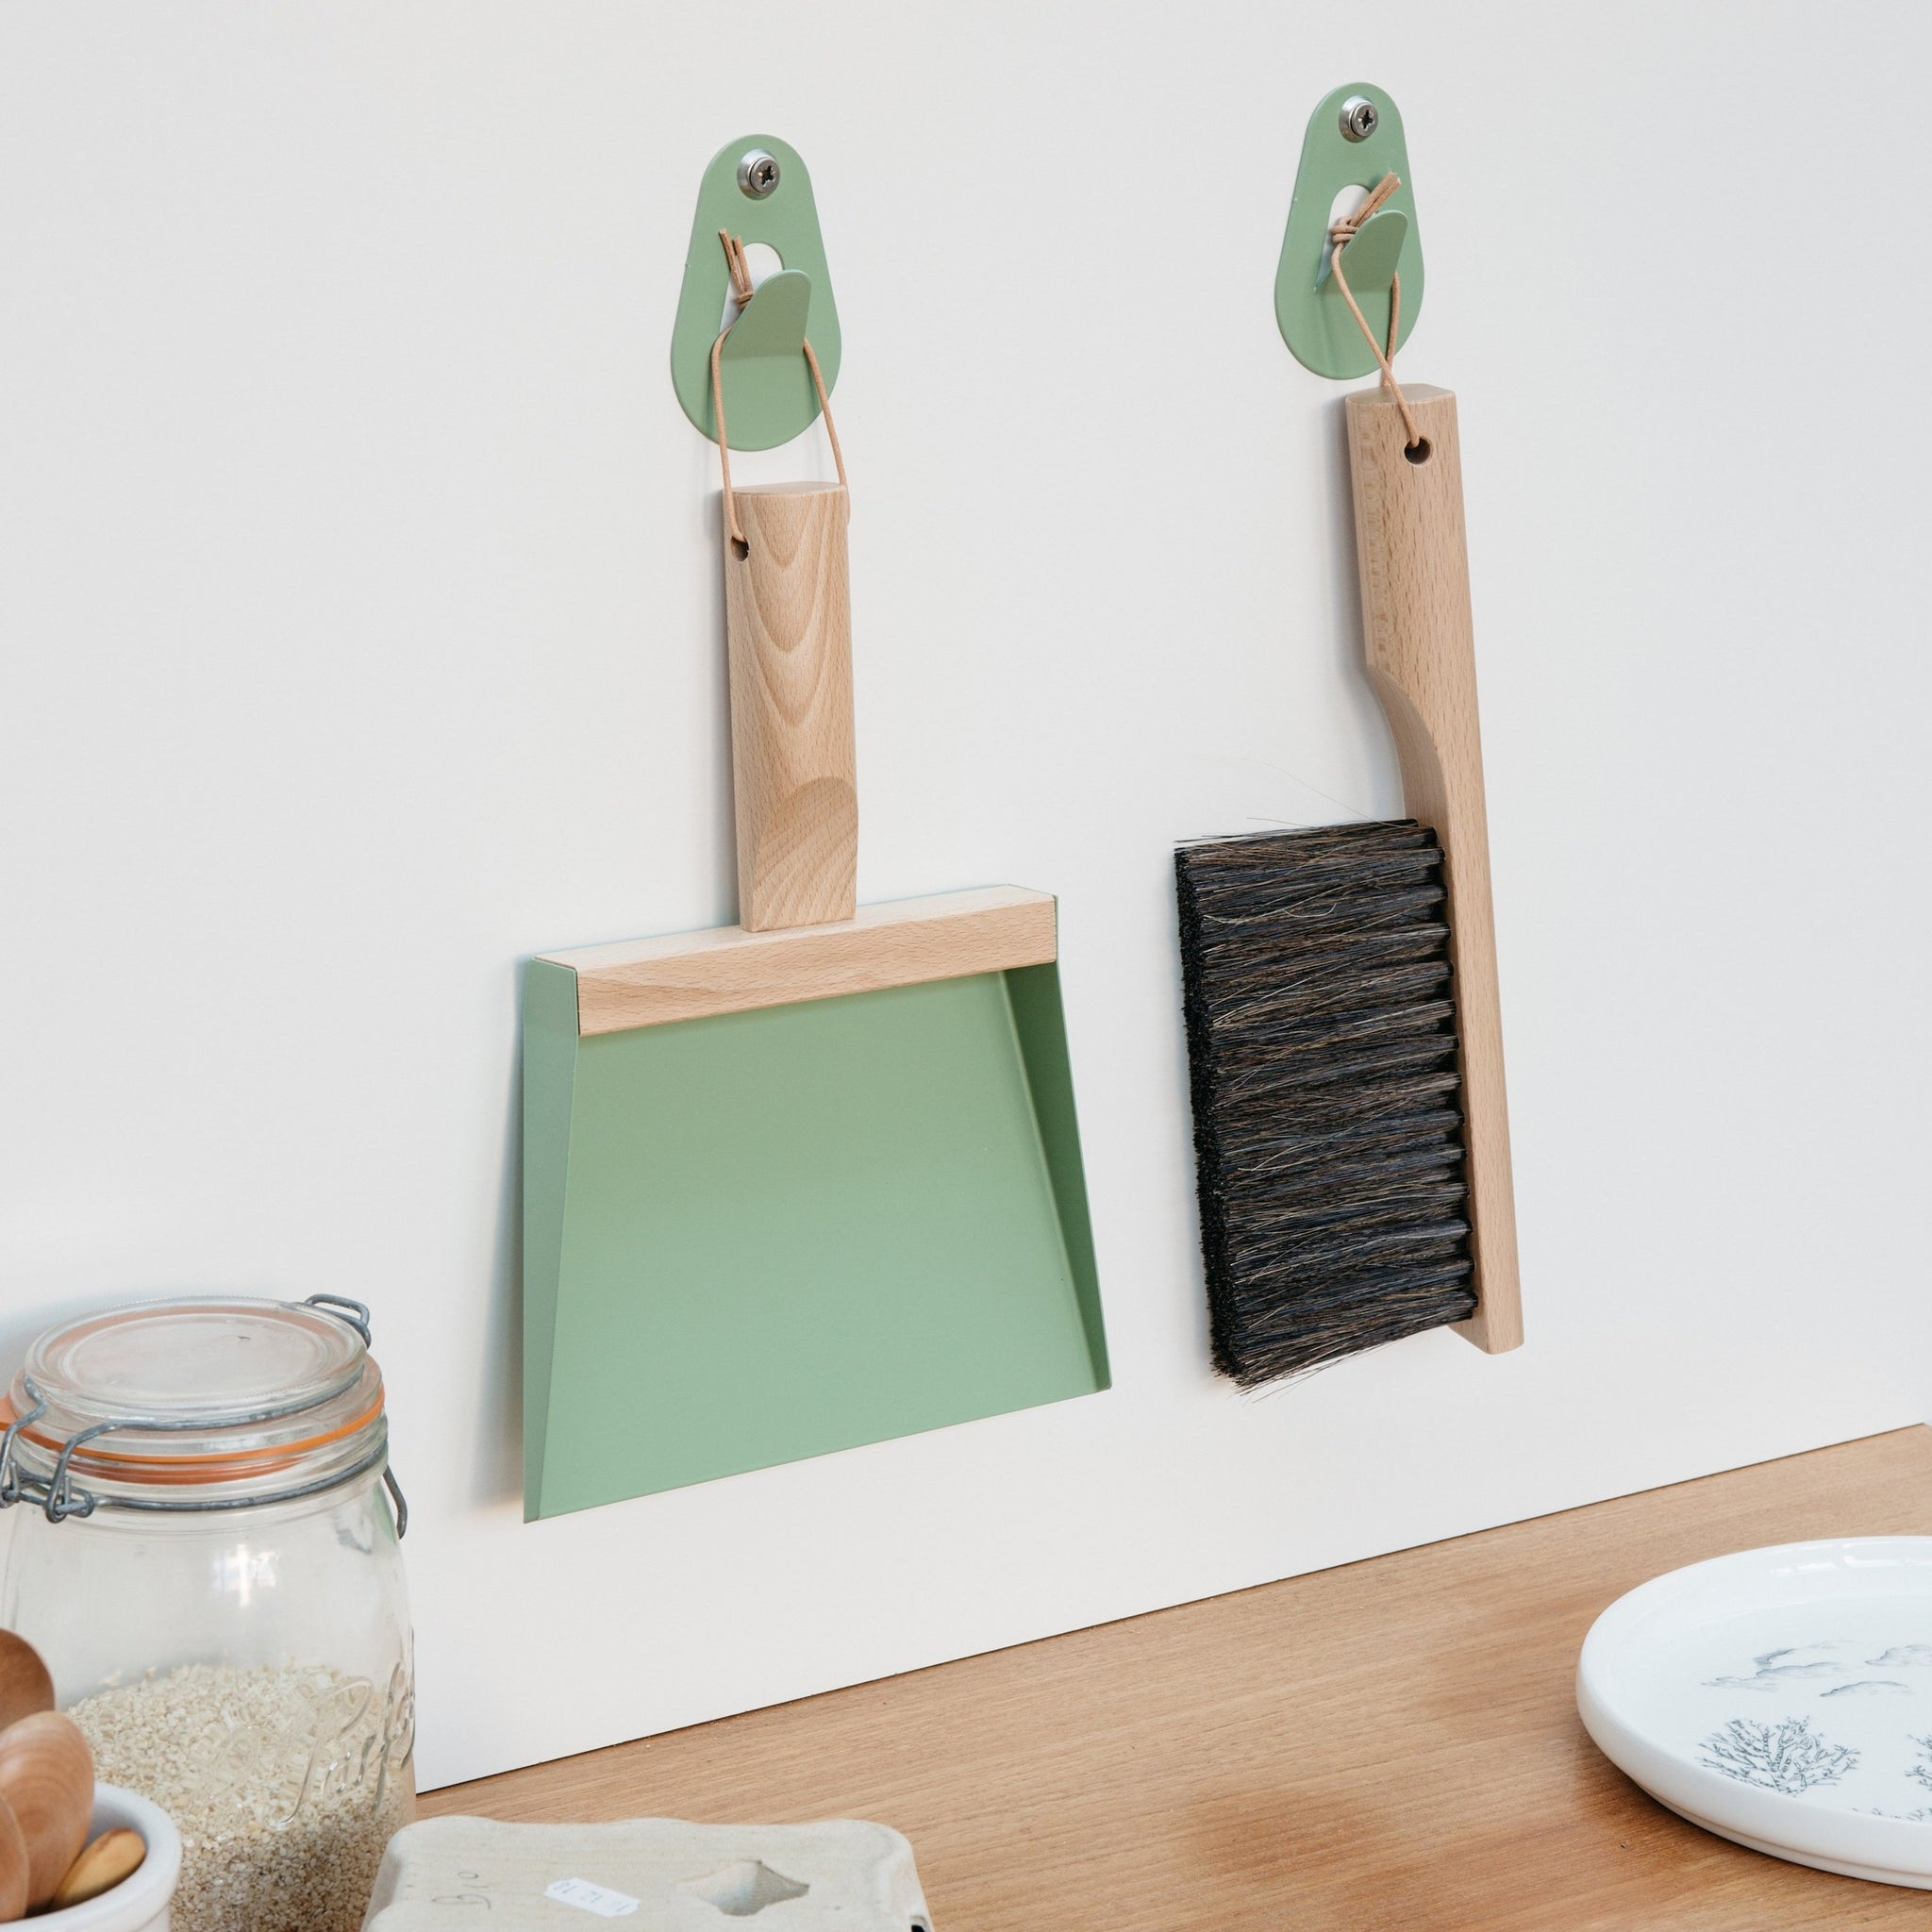 Dustpan & handbrush set